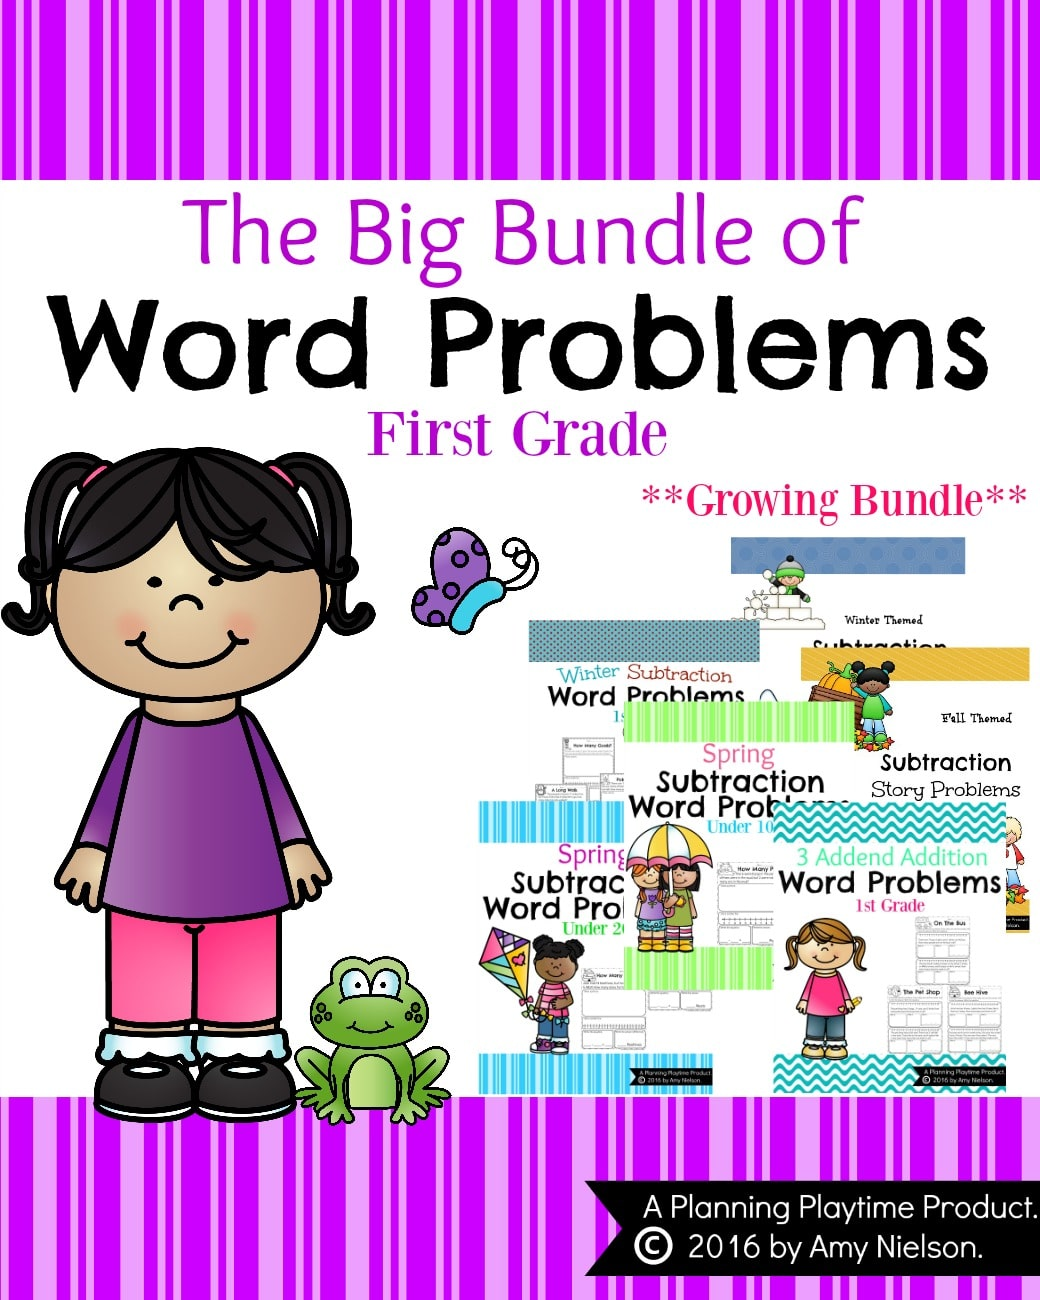 First Grade Word Problems - Growing Bundle